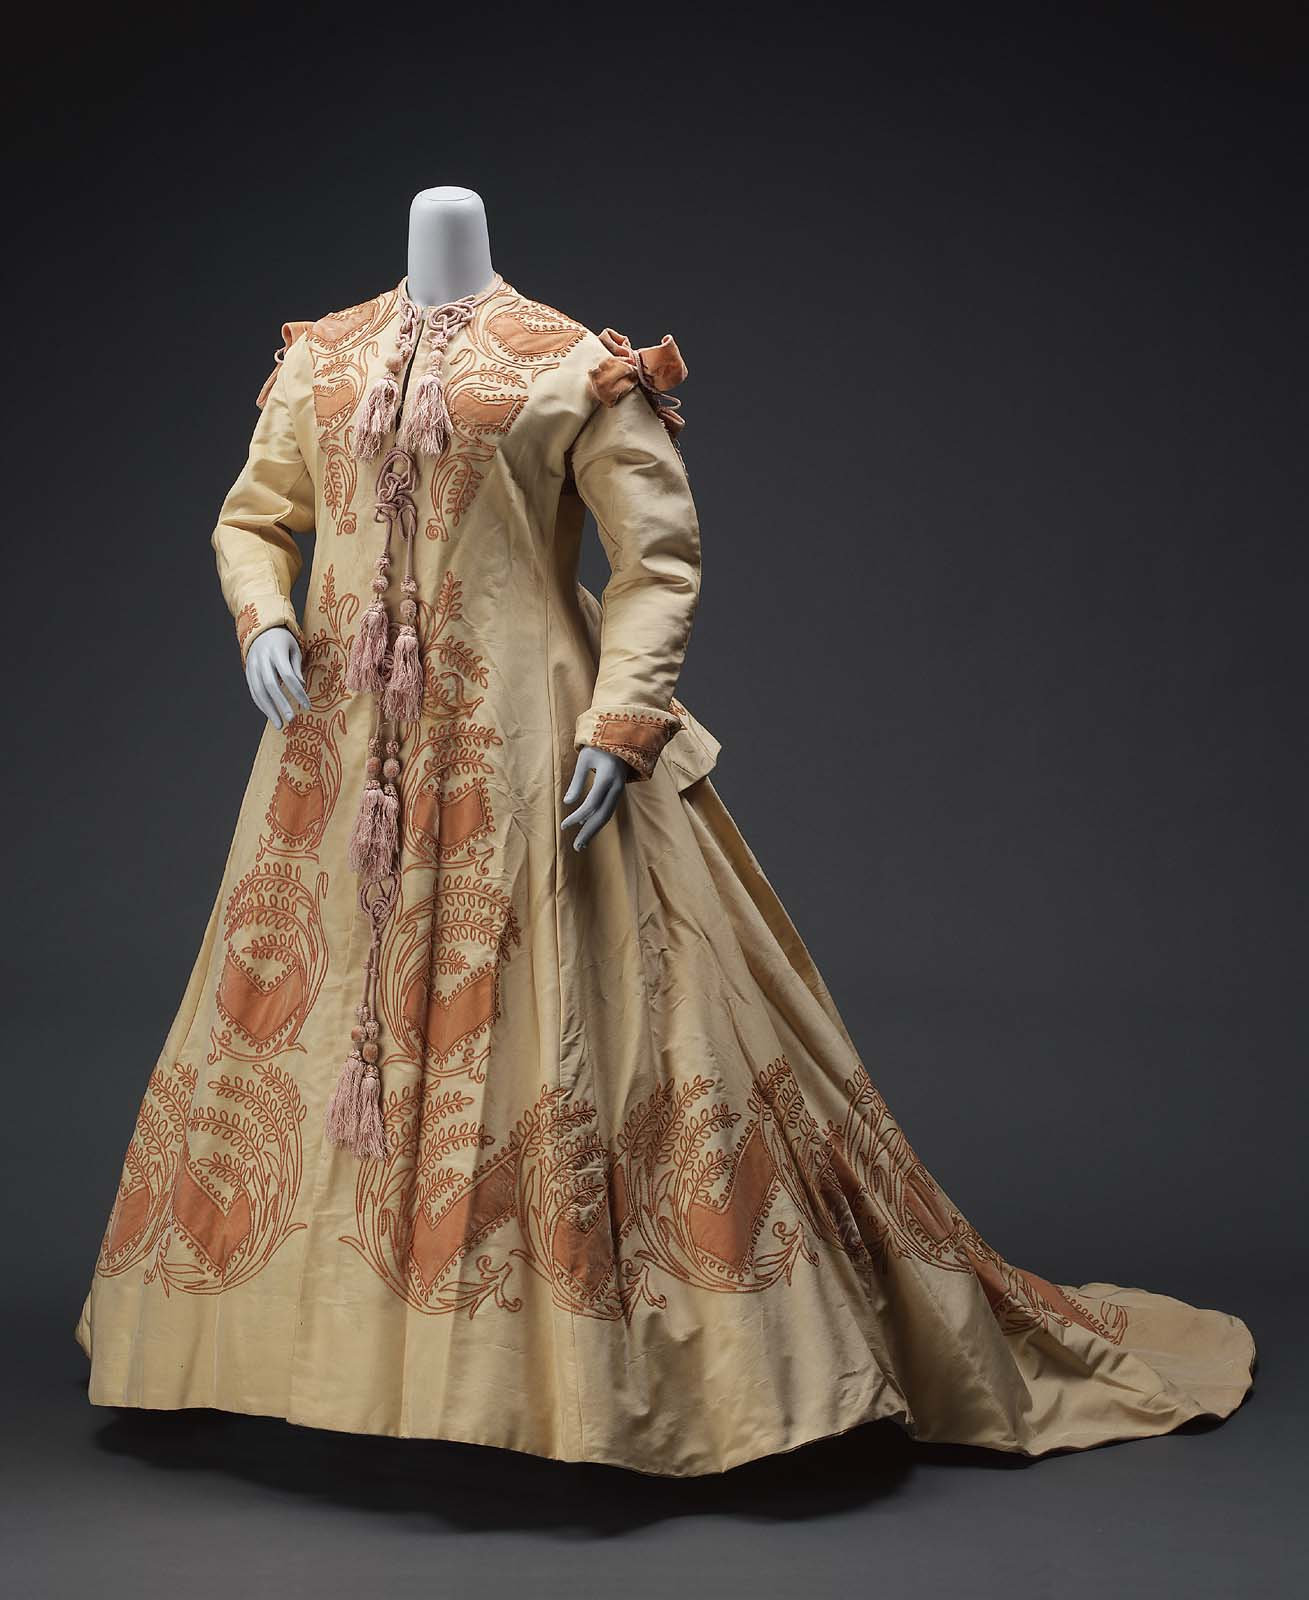 Robe of ribbed silk, American or French 1865–70, MFA Boston, 64.1002